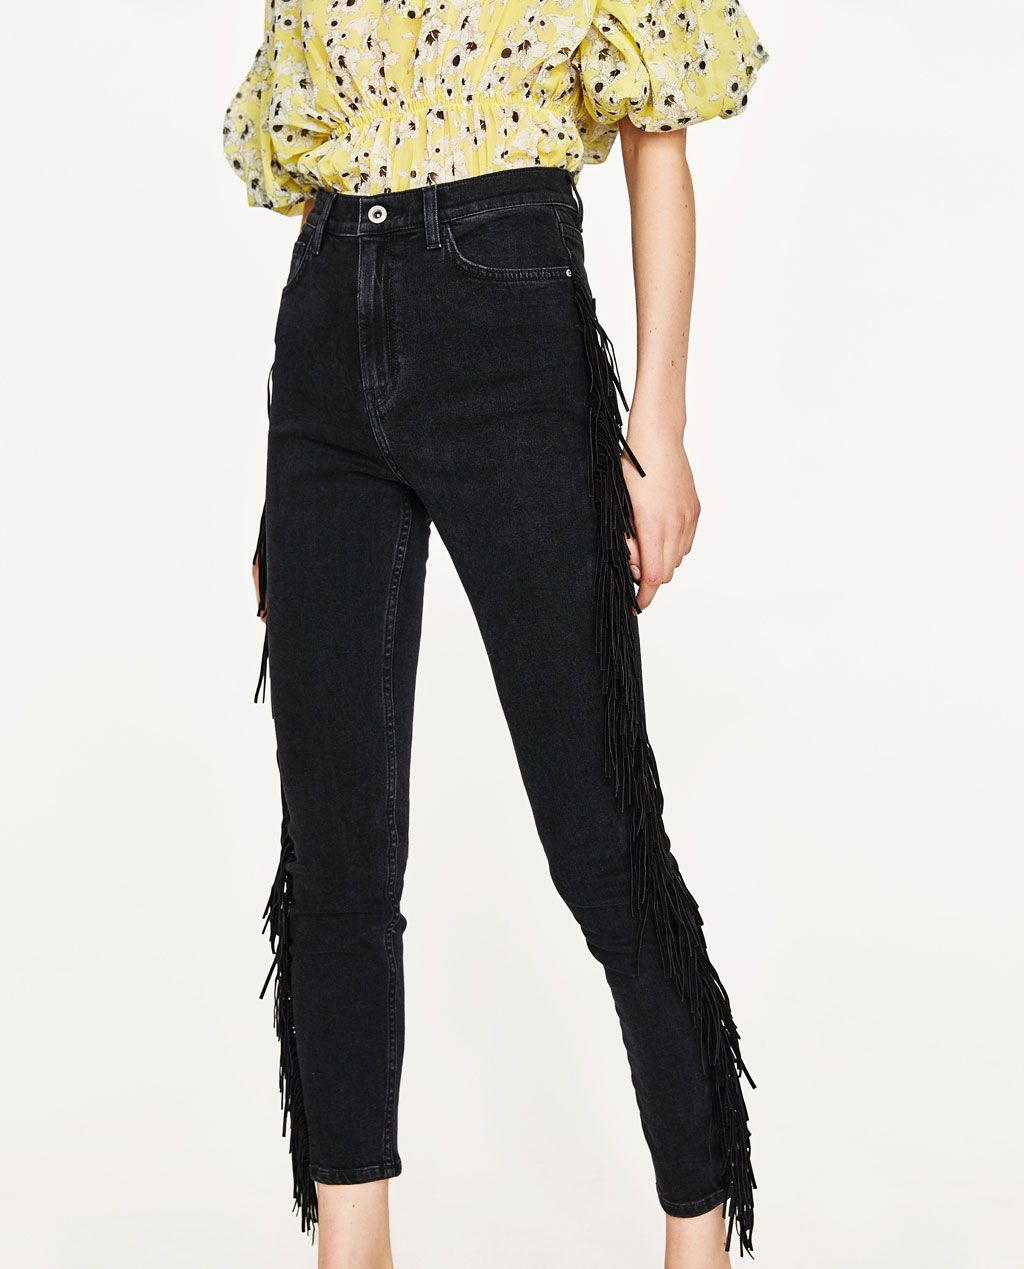 73691506d12 HIGH WAIST JEANS WITH FRINGE-View All-JEANS-WOMAN